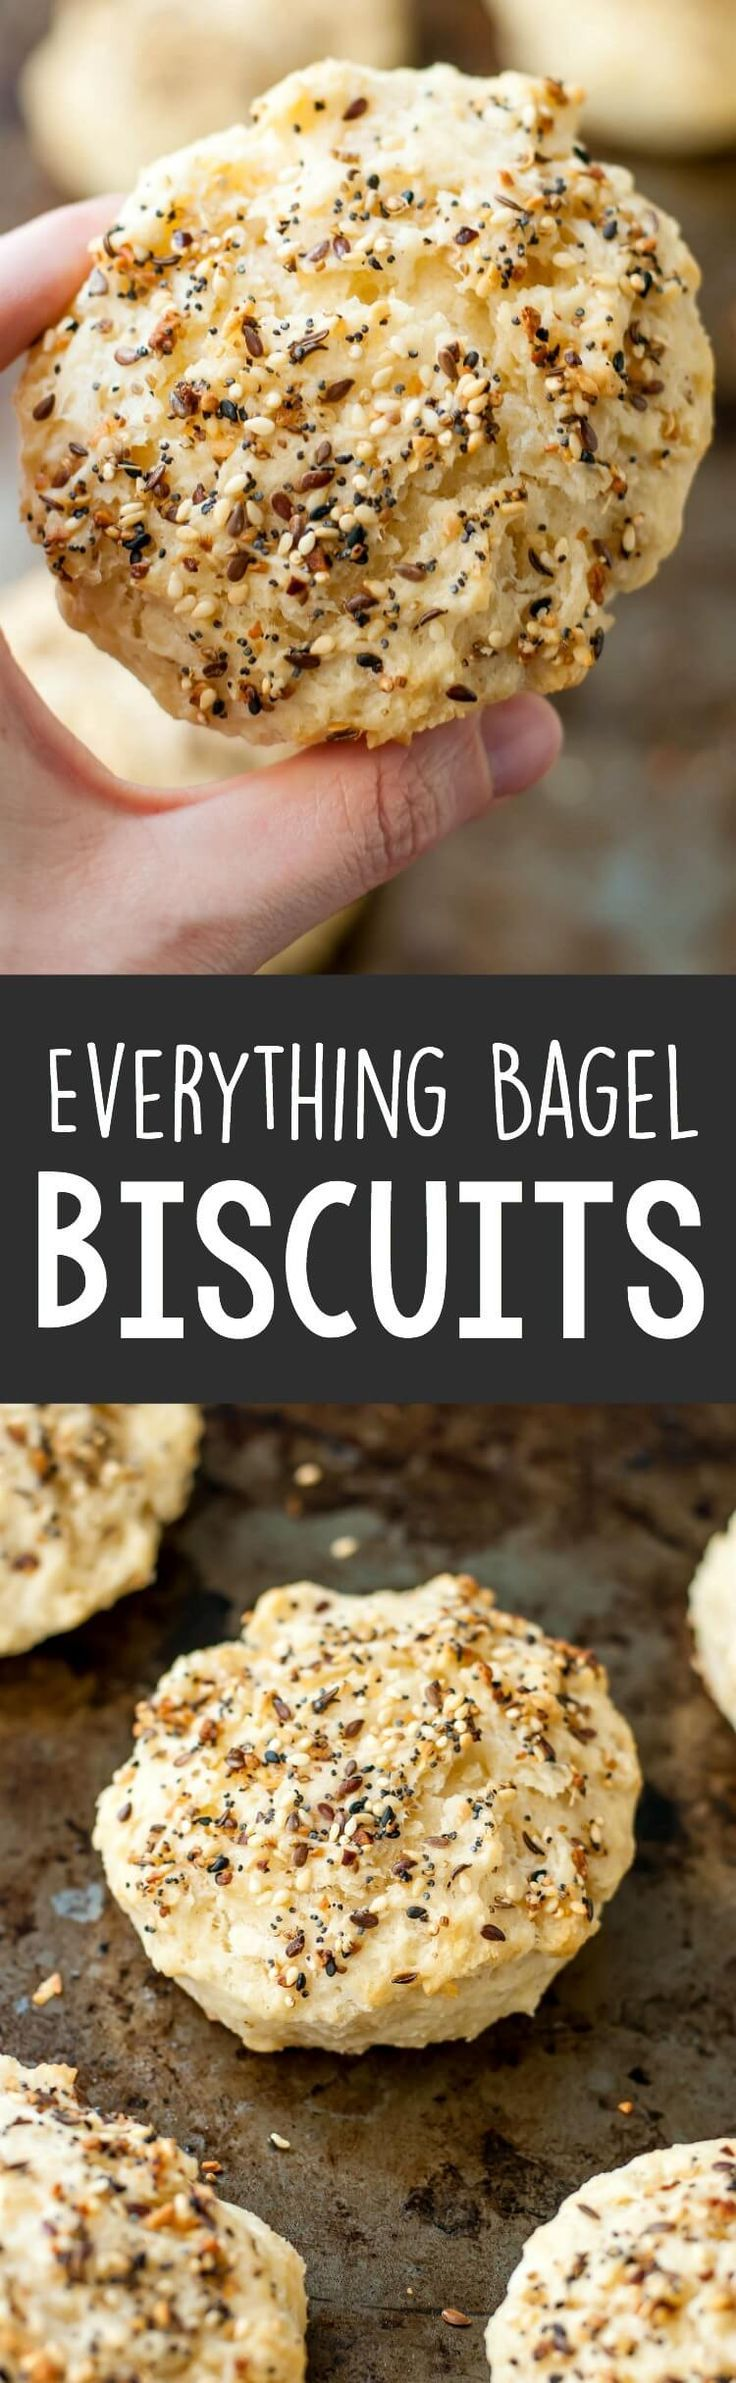 These easy everything bagel biscuits have a crunchy, flavorful, everything bagel outside with a light, fluffy, and flaky inside!